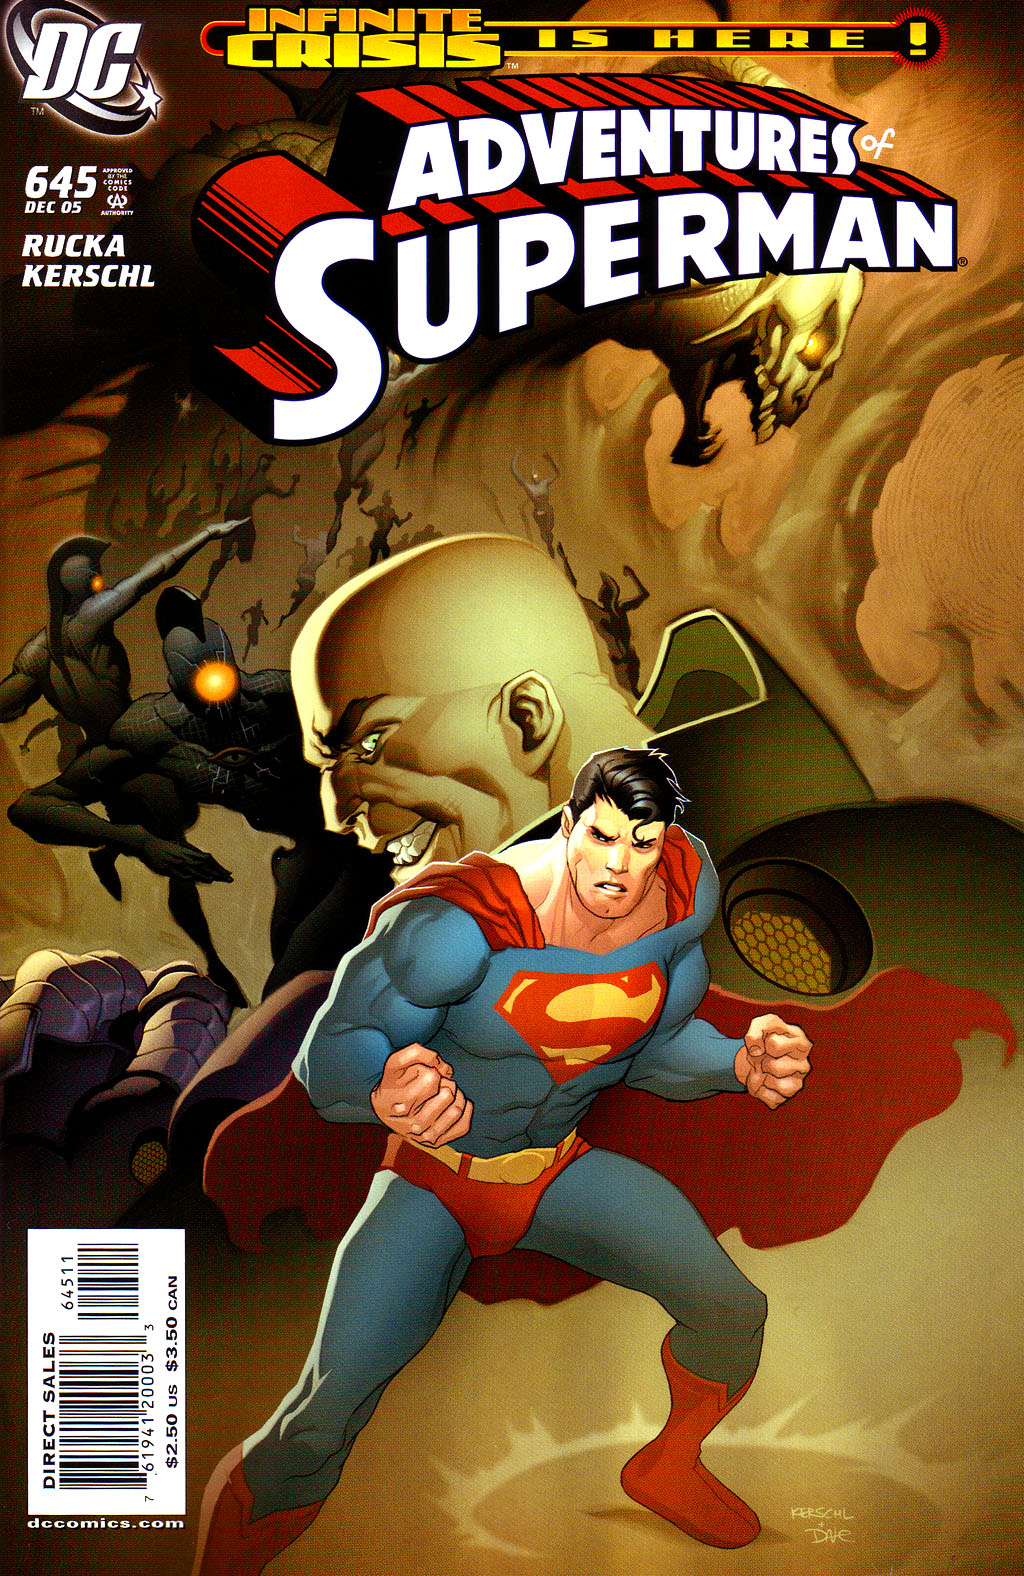 Read online Adventures of Superman (1987) comic -  Issue #645 - 1